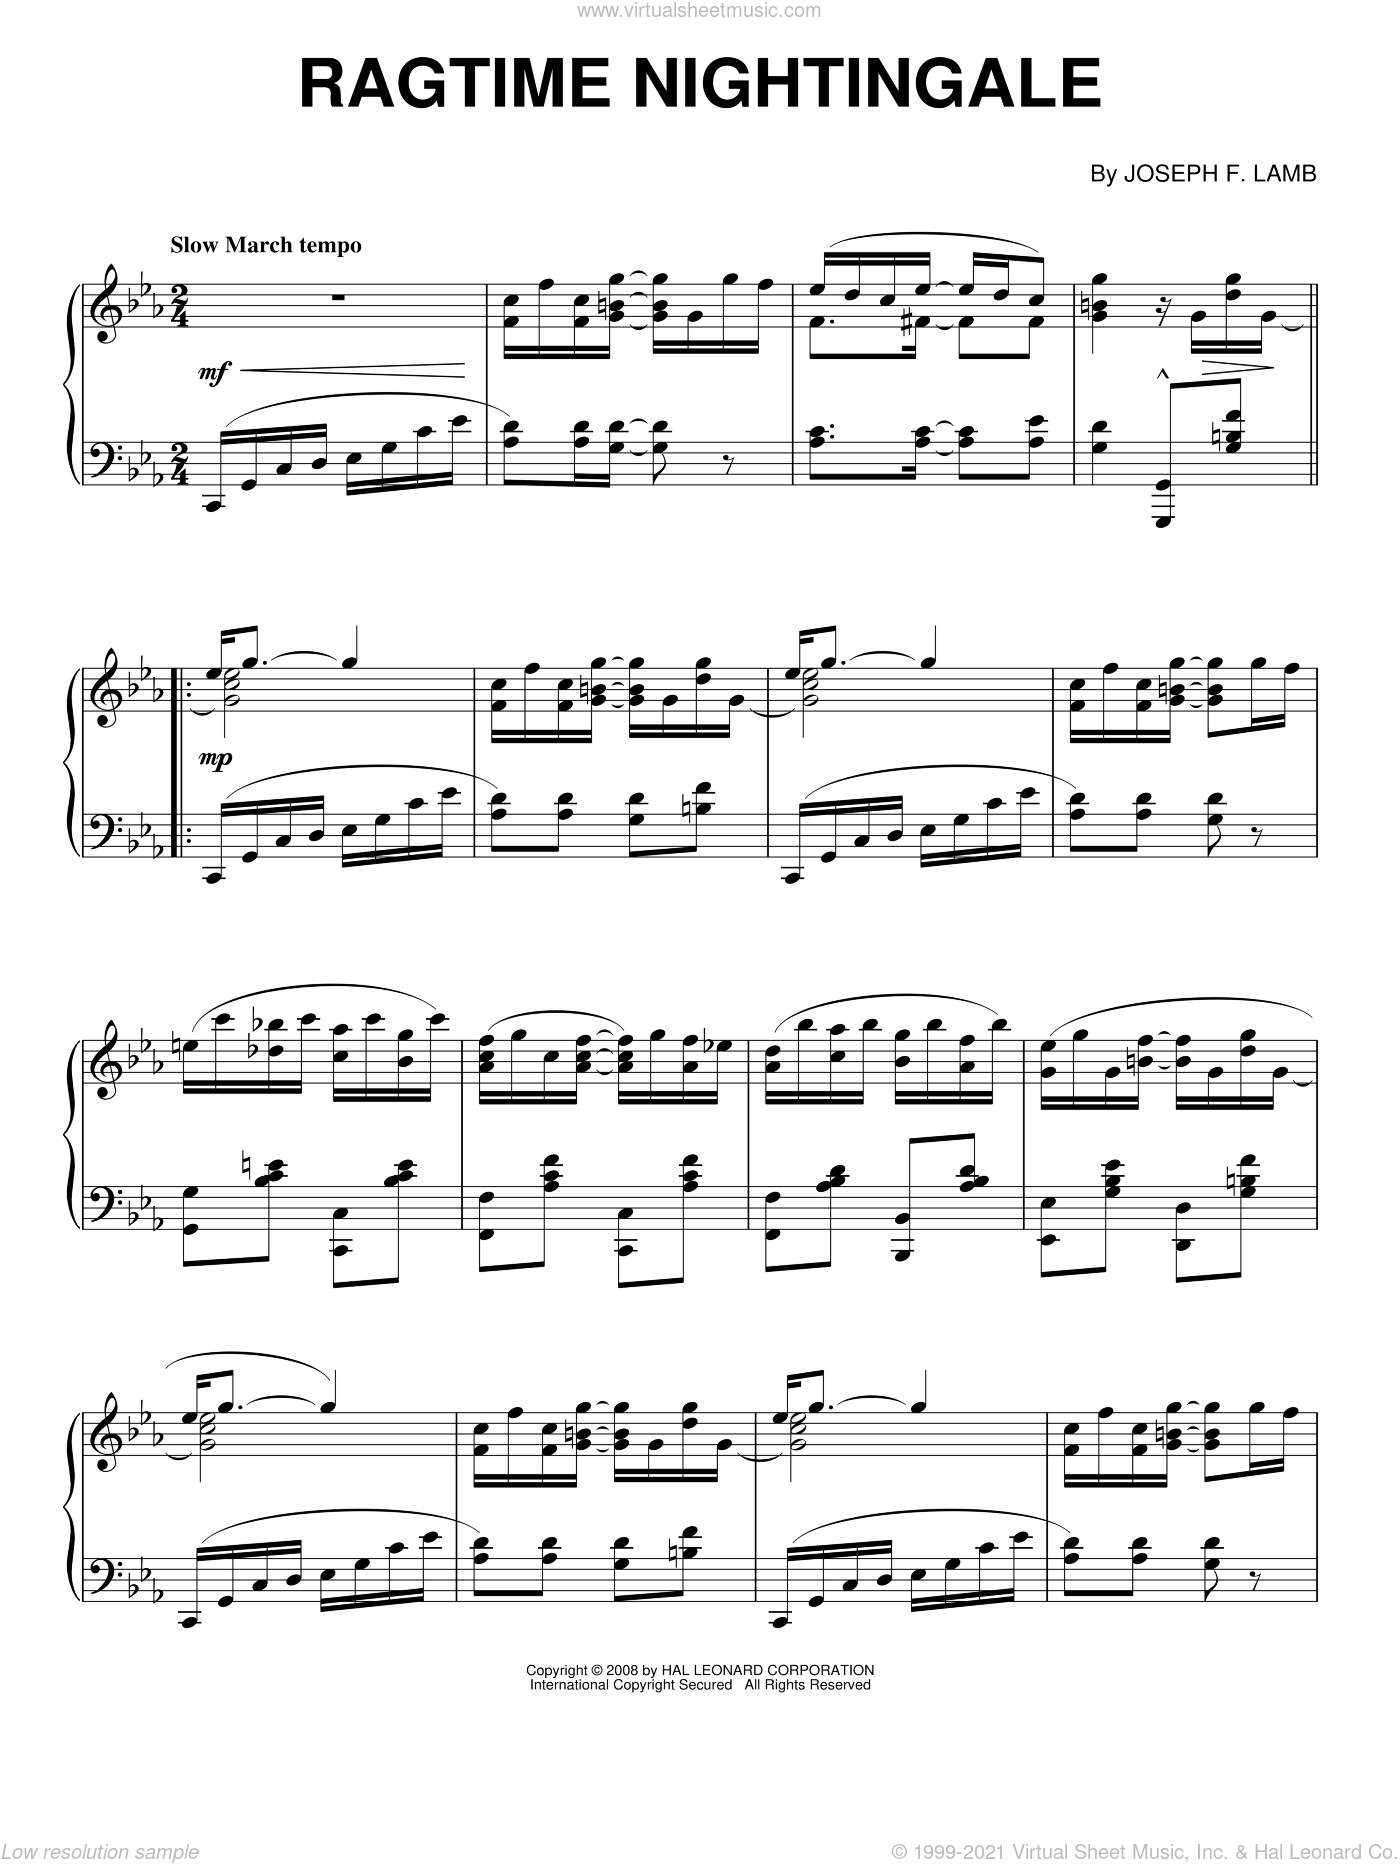 Ragtime Nightingale sheet music for piano solo by Joseph Lamb, intermediate skill level